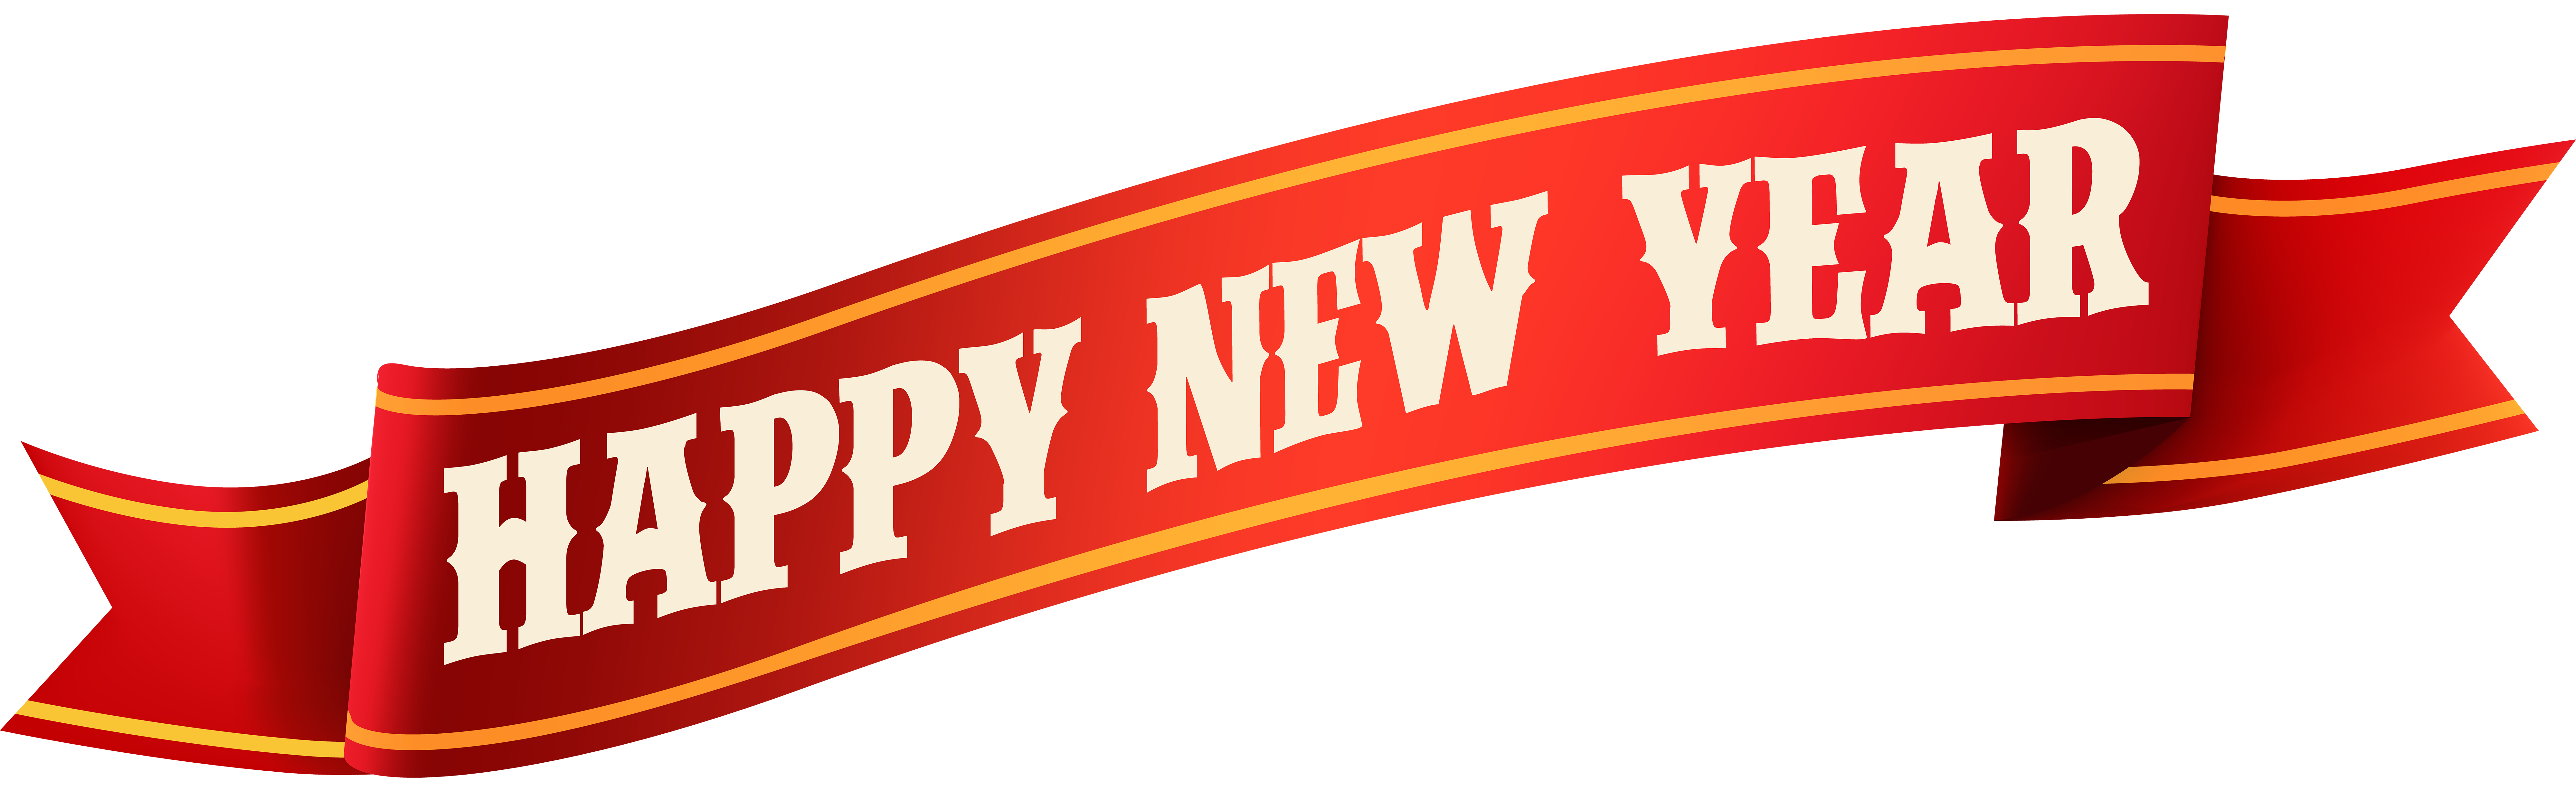 Happy png clip art. Free clipart new year